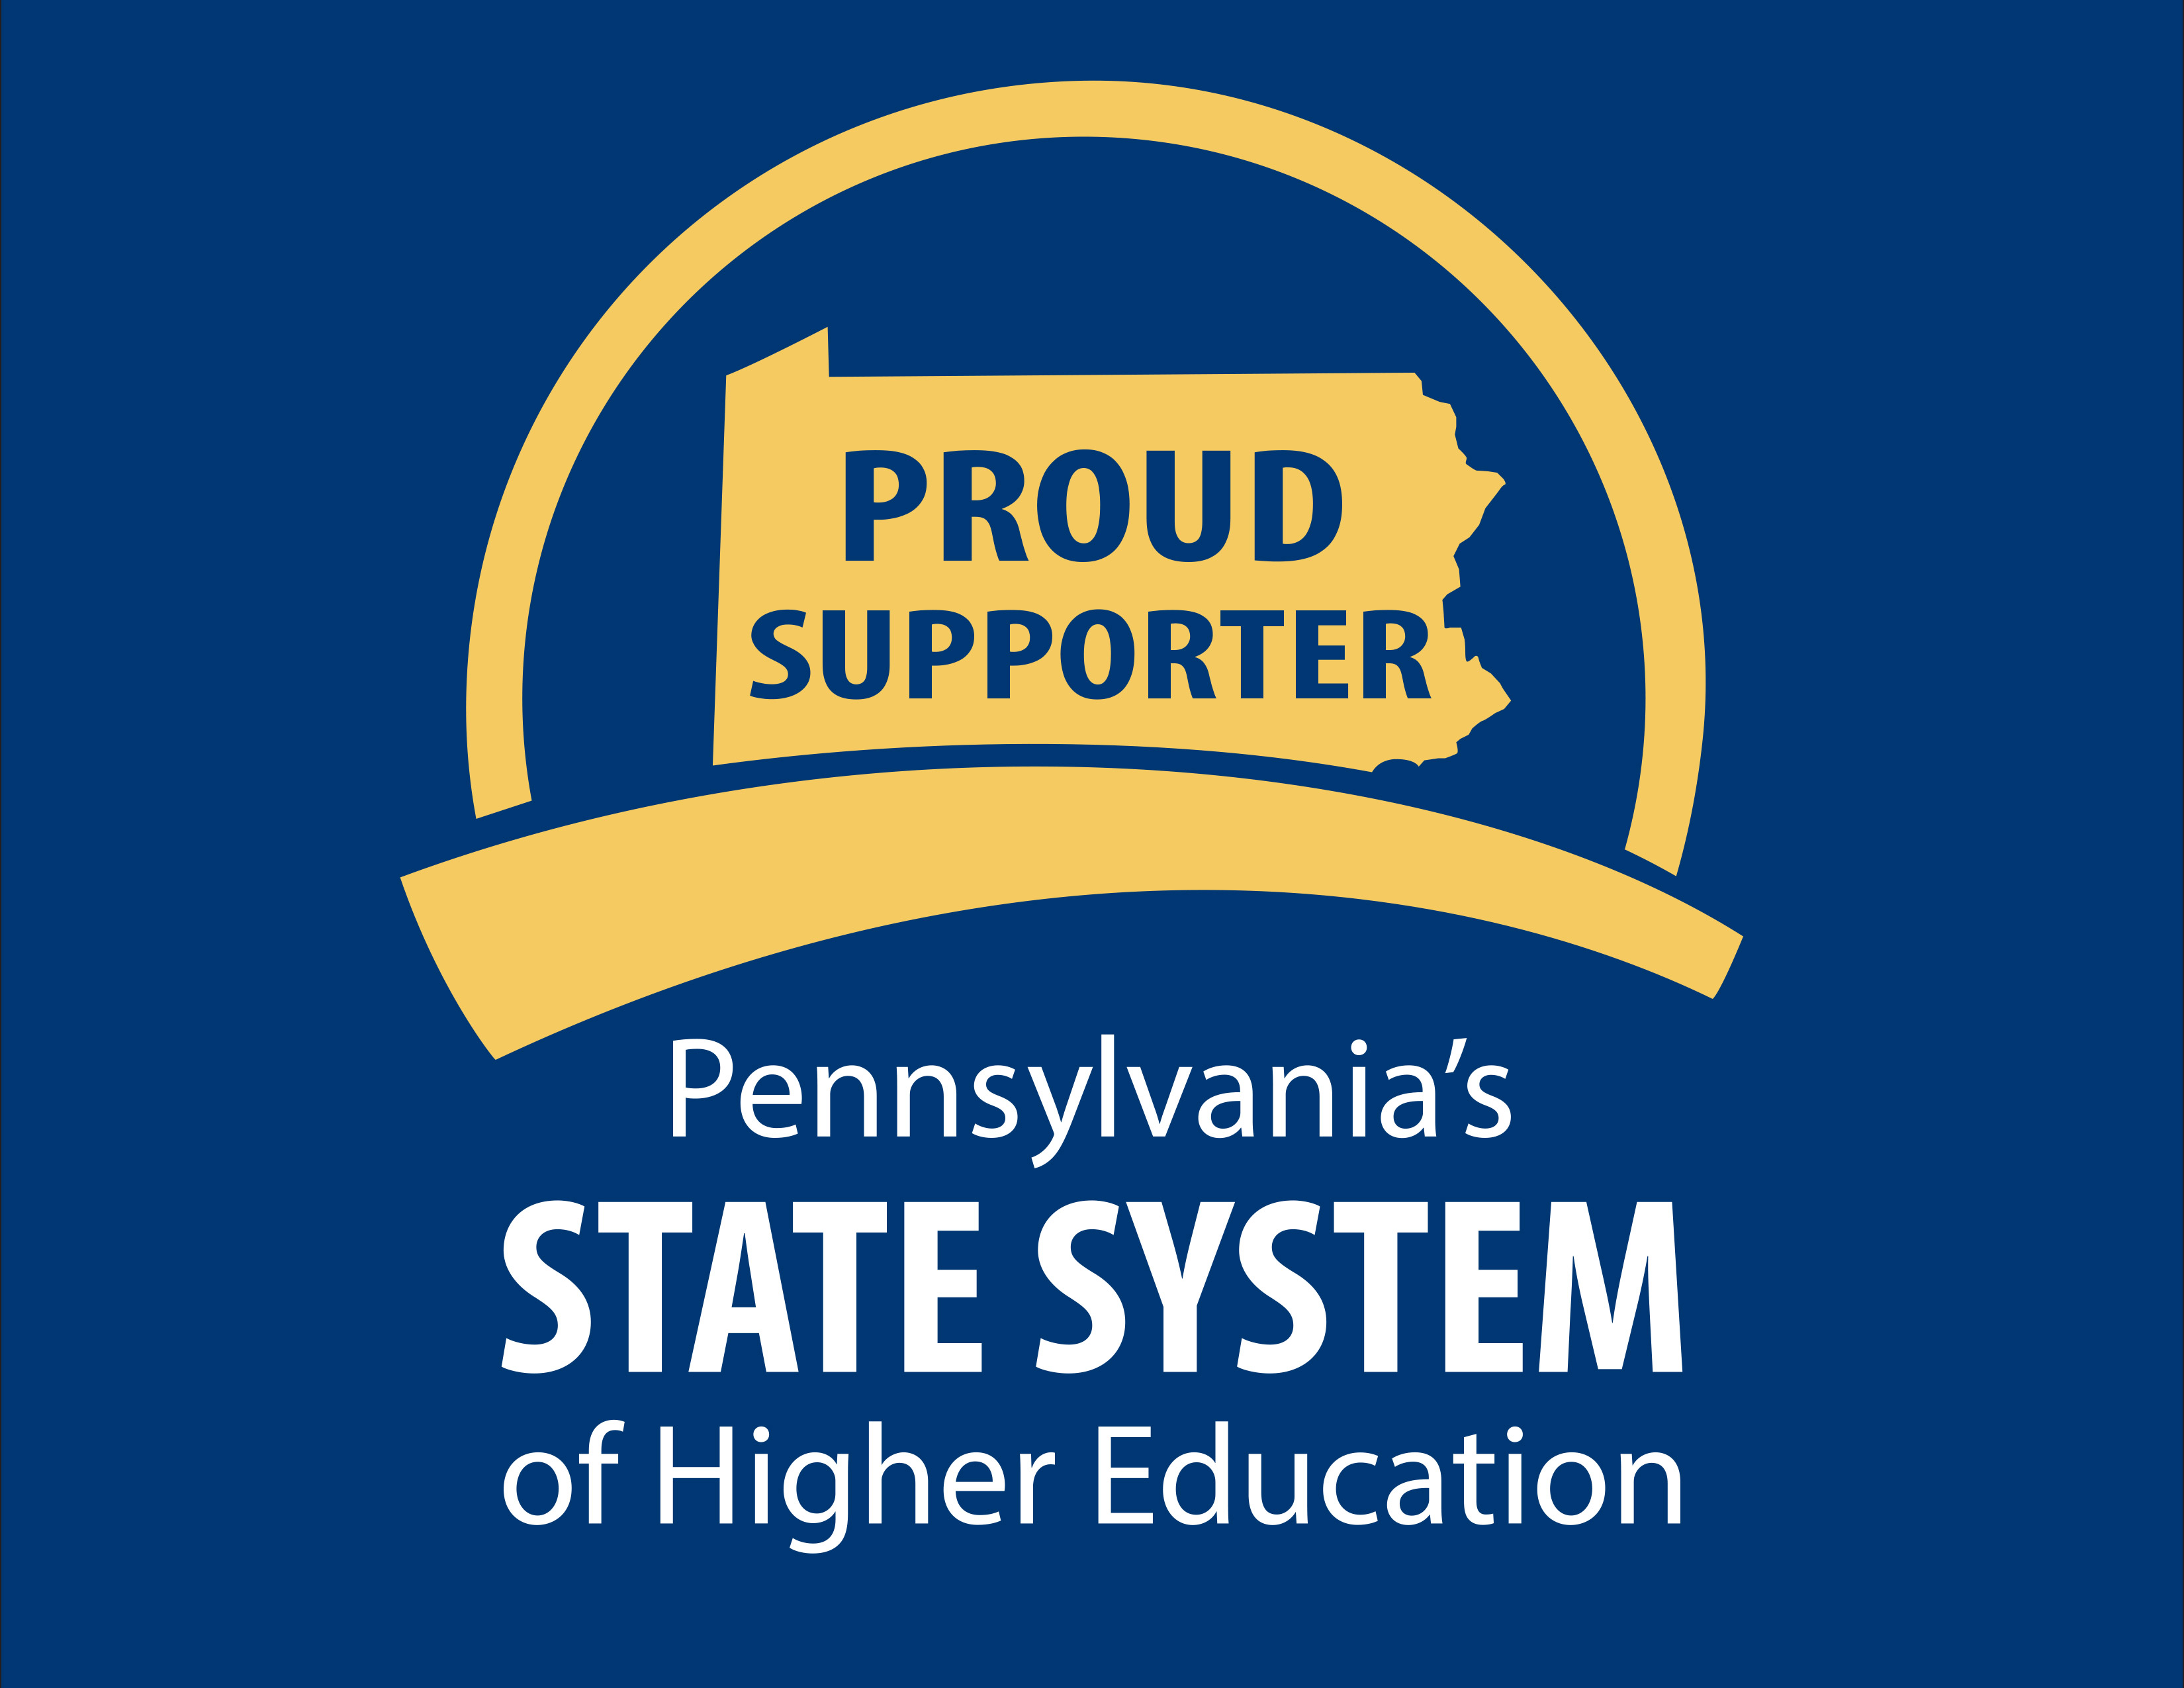 State System Proud Supporter